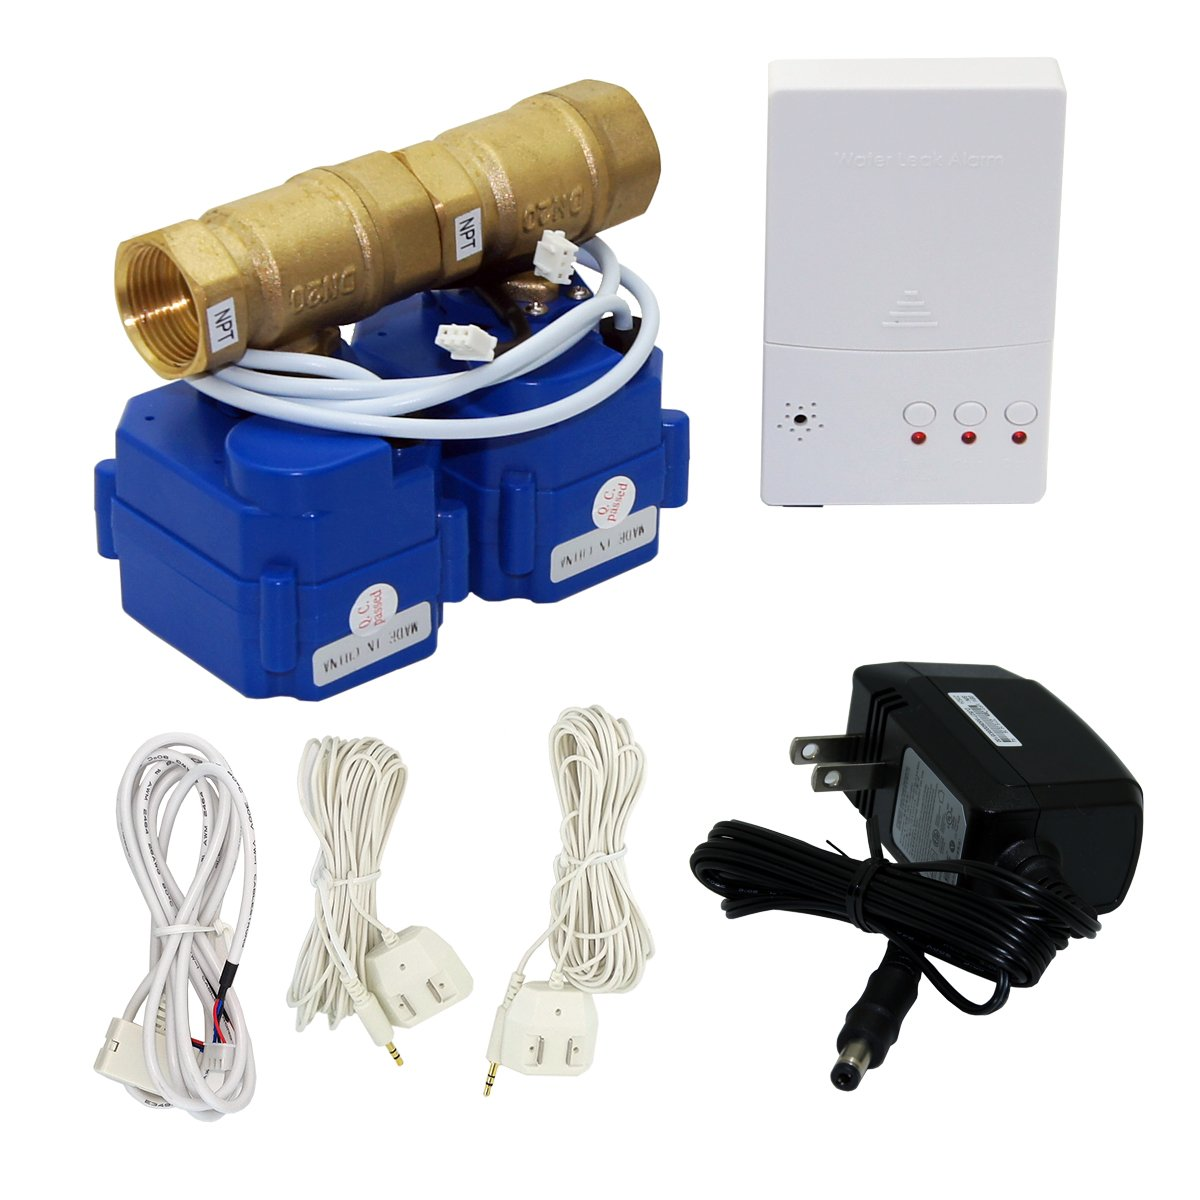 E-SDS Automatic Water Leak Shut Off Valve System,Water Leak Detector with 2 Valves,2 Sensors and Sounds Alarm,for Pipes 3/4 NPT,Flood Prevention for Laundry Washing Machines,Water Heaters and More by E-sds